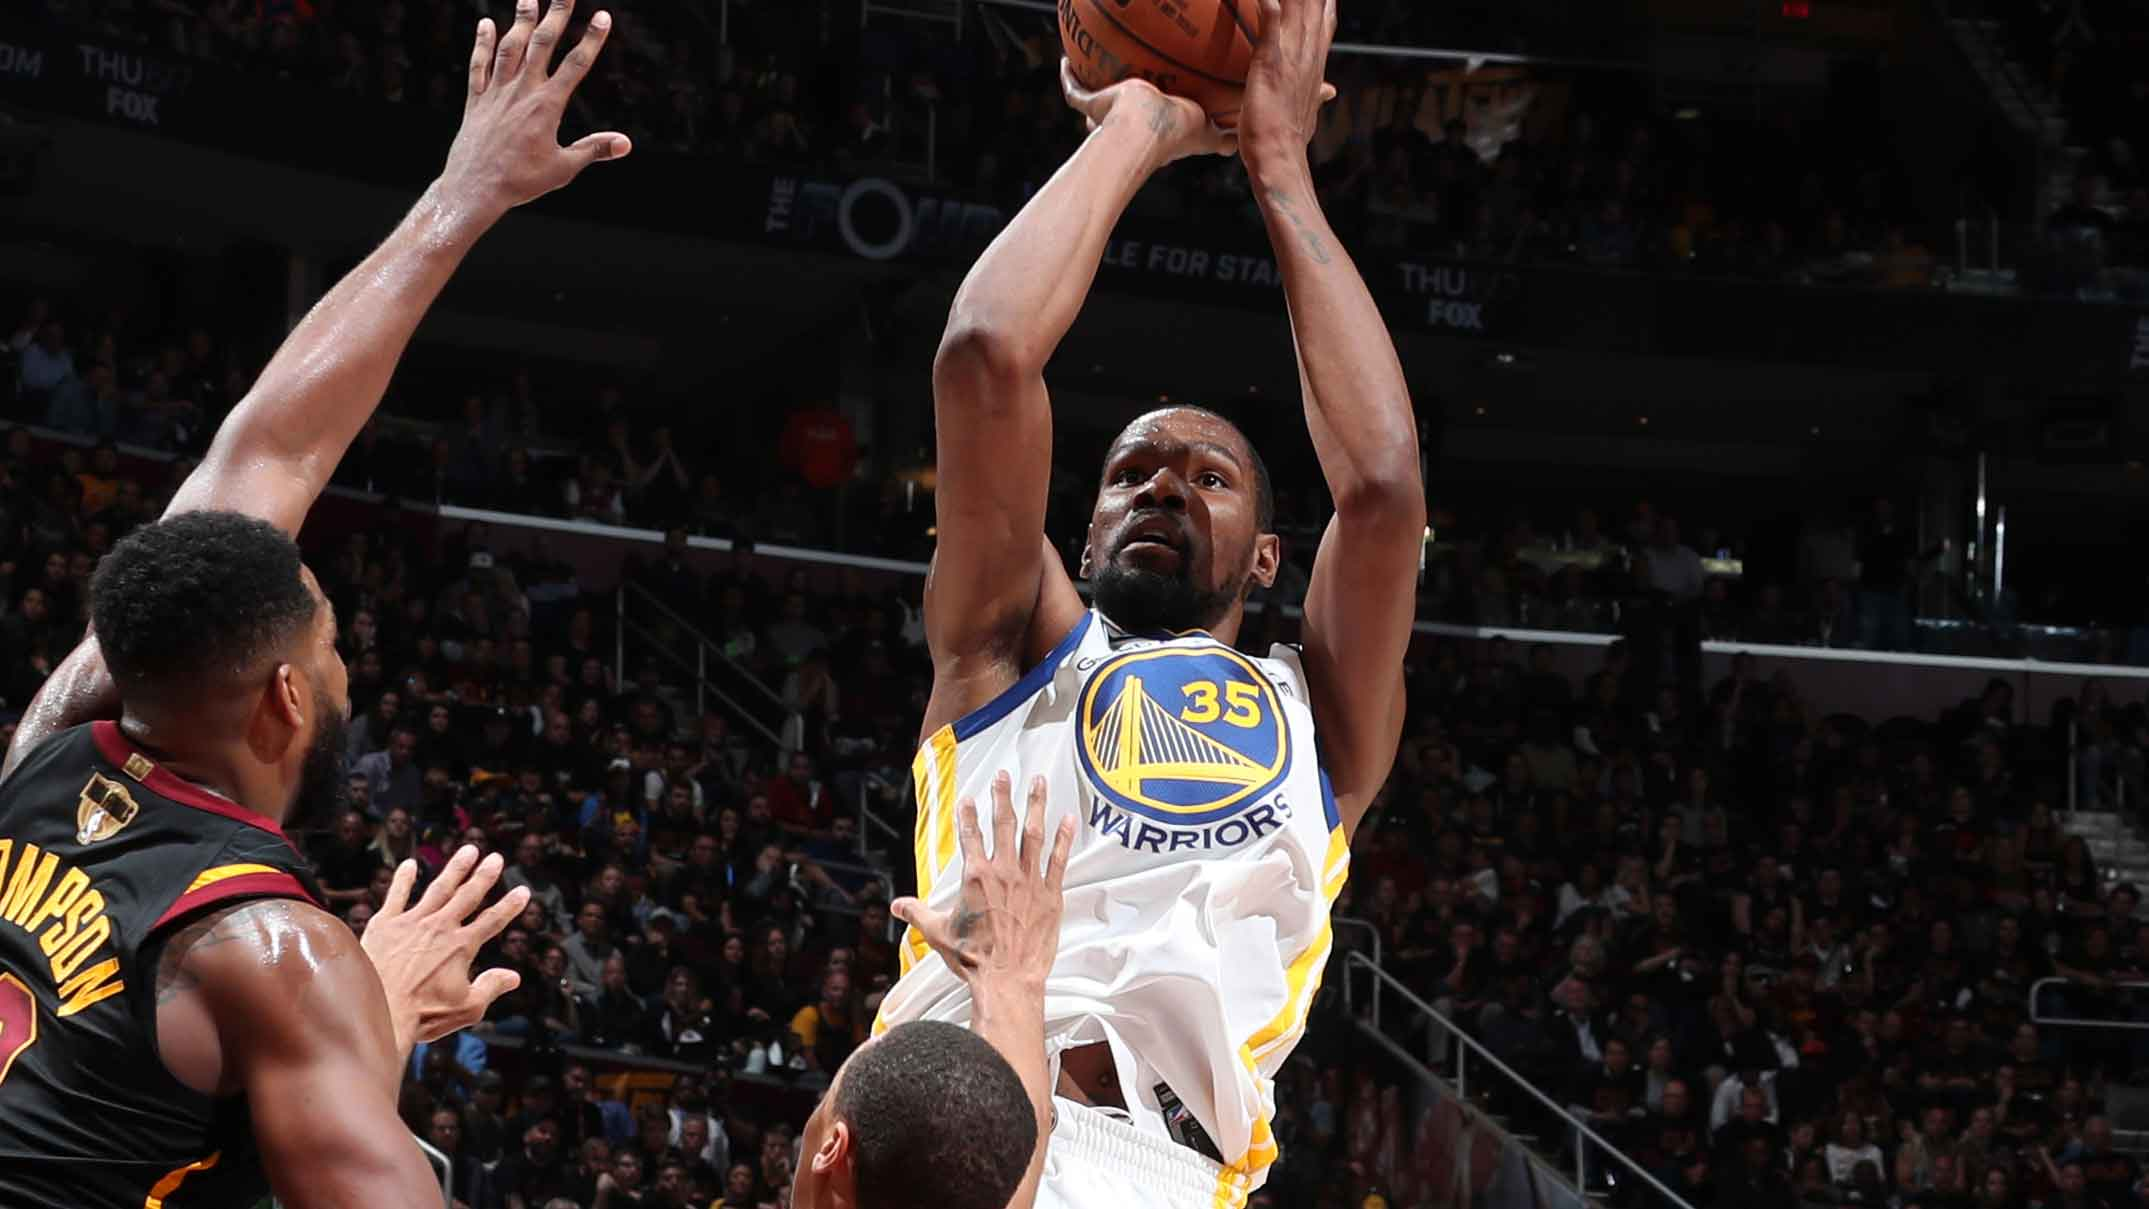 GAME 3 RECAP: Warriors 110, Cleveland 102